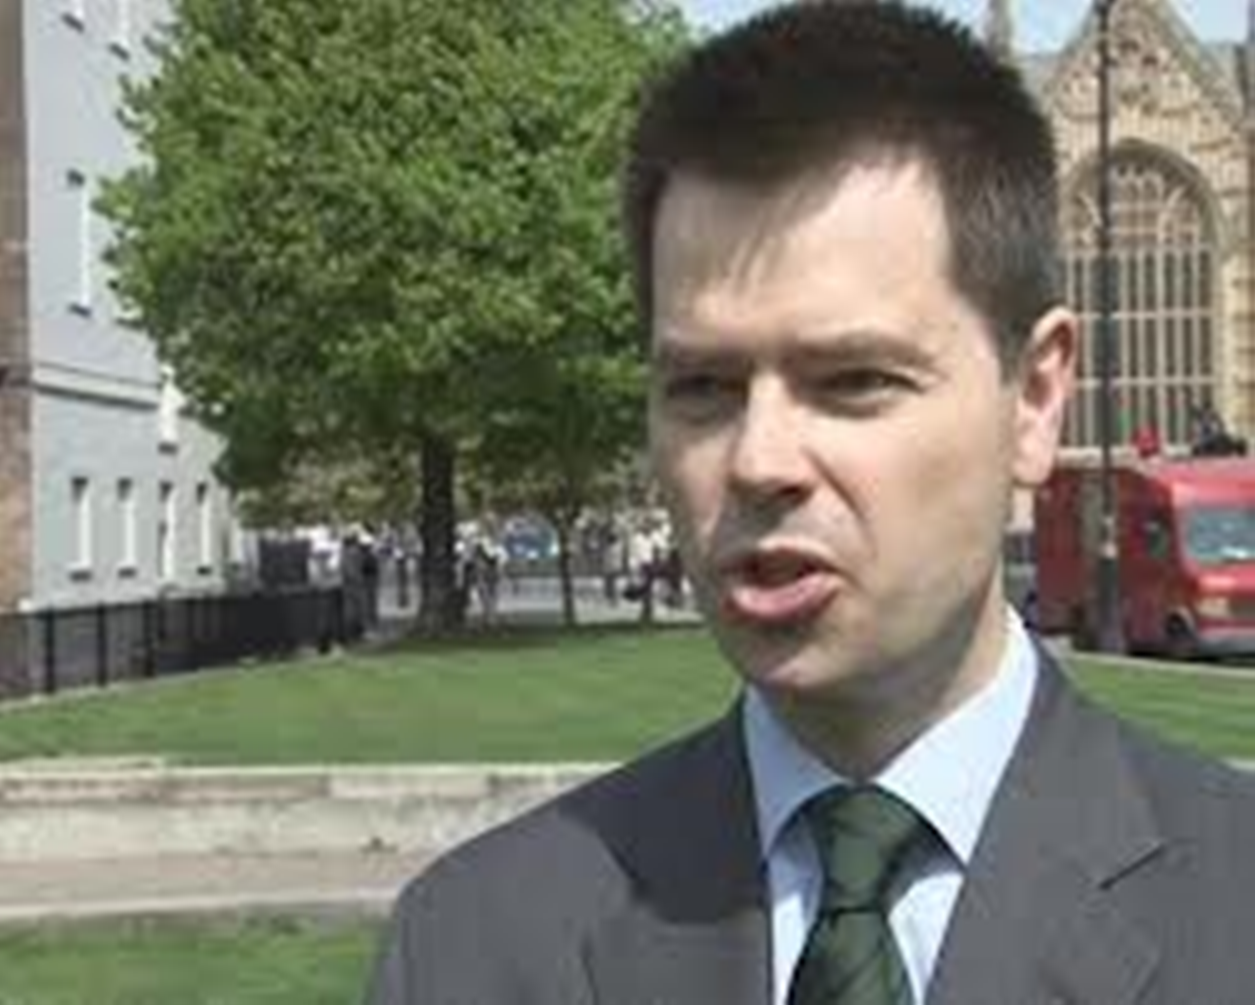 Sidcup and OId Bexley MP James Brokenshire.